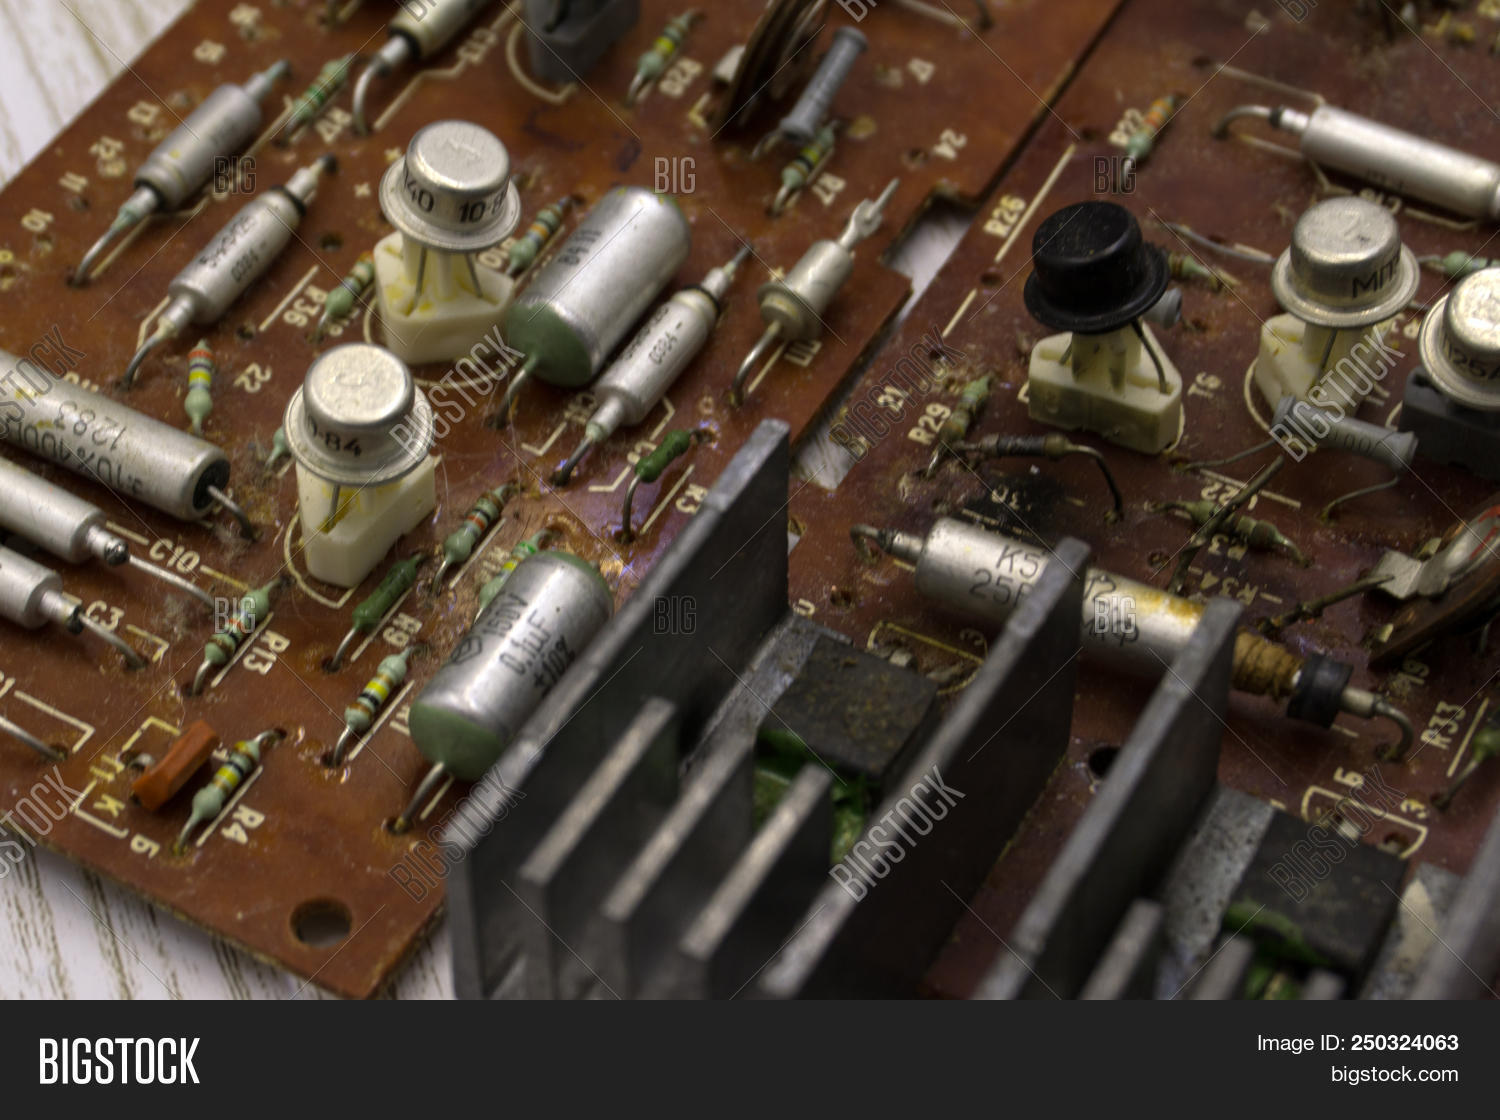 Old Soviet Radio Image Photo Free Trial Bigstock Picture Of Circuit Board Interior Electronic Components Close Up Red Backgroun